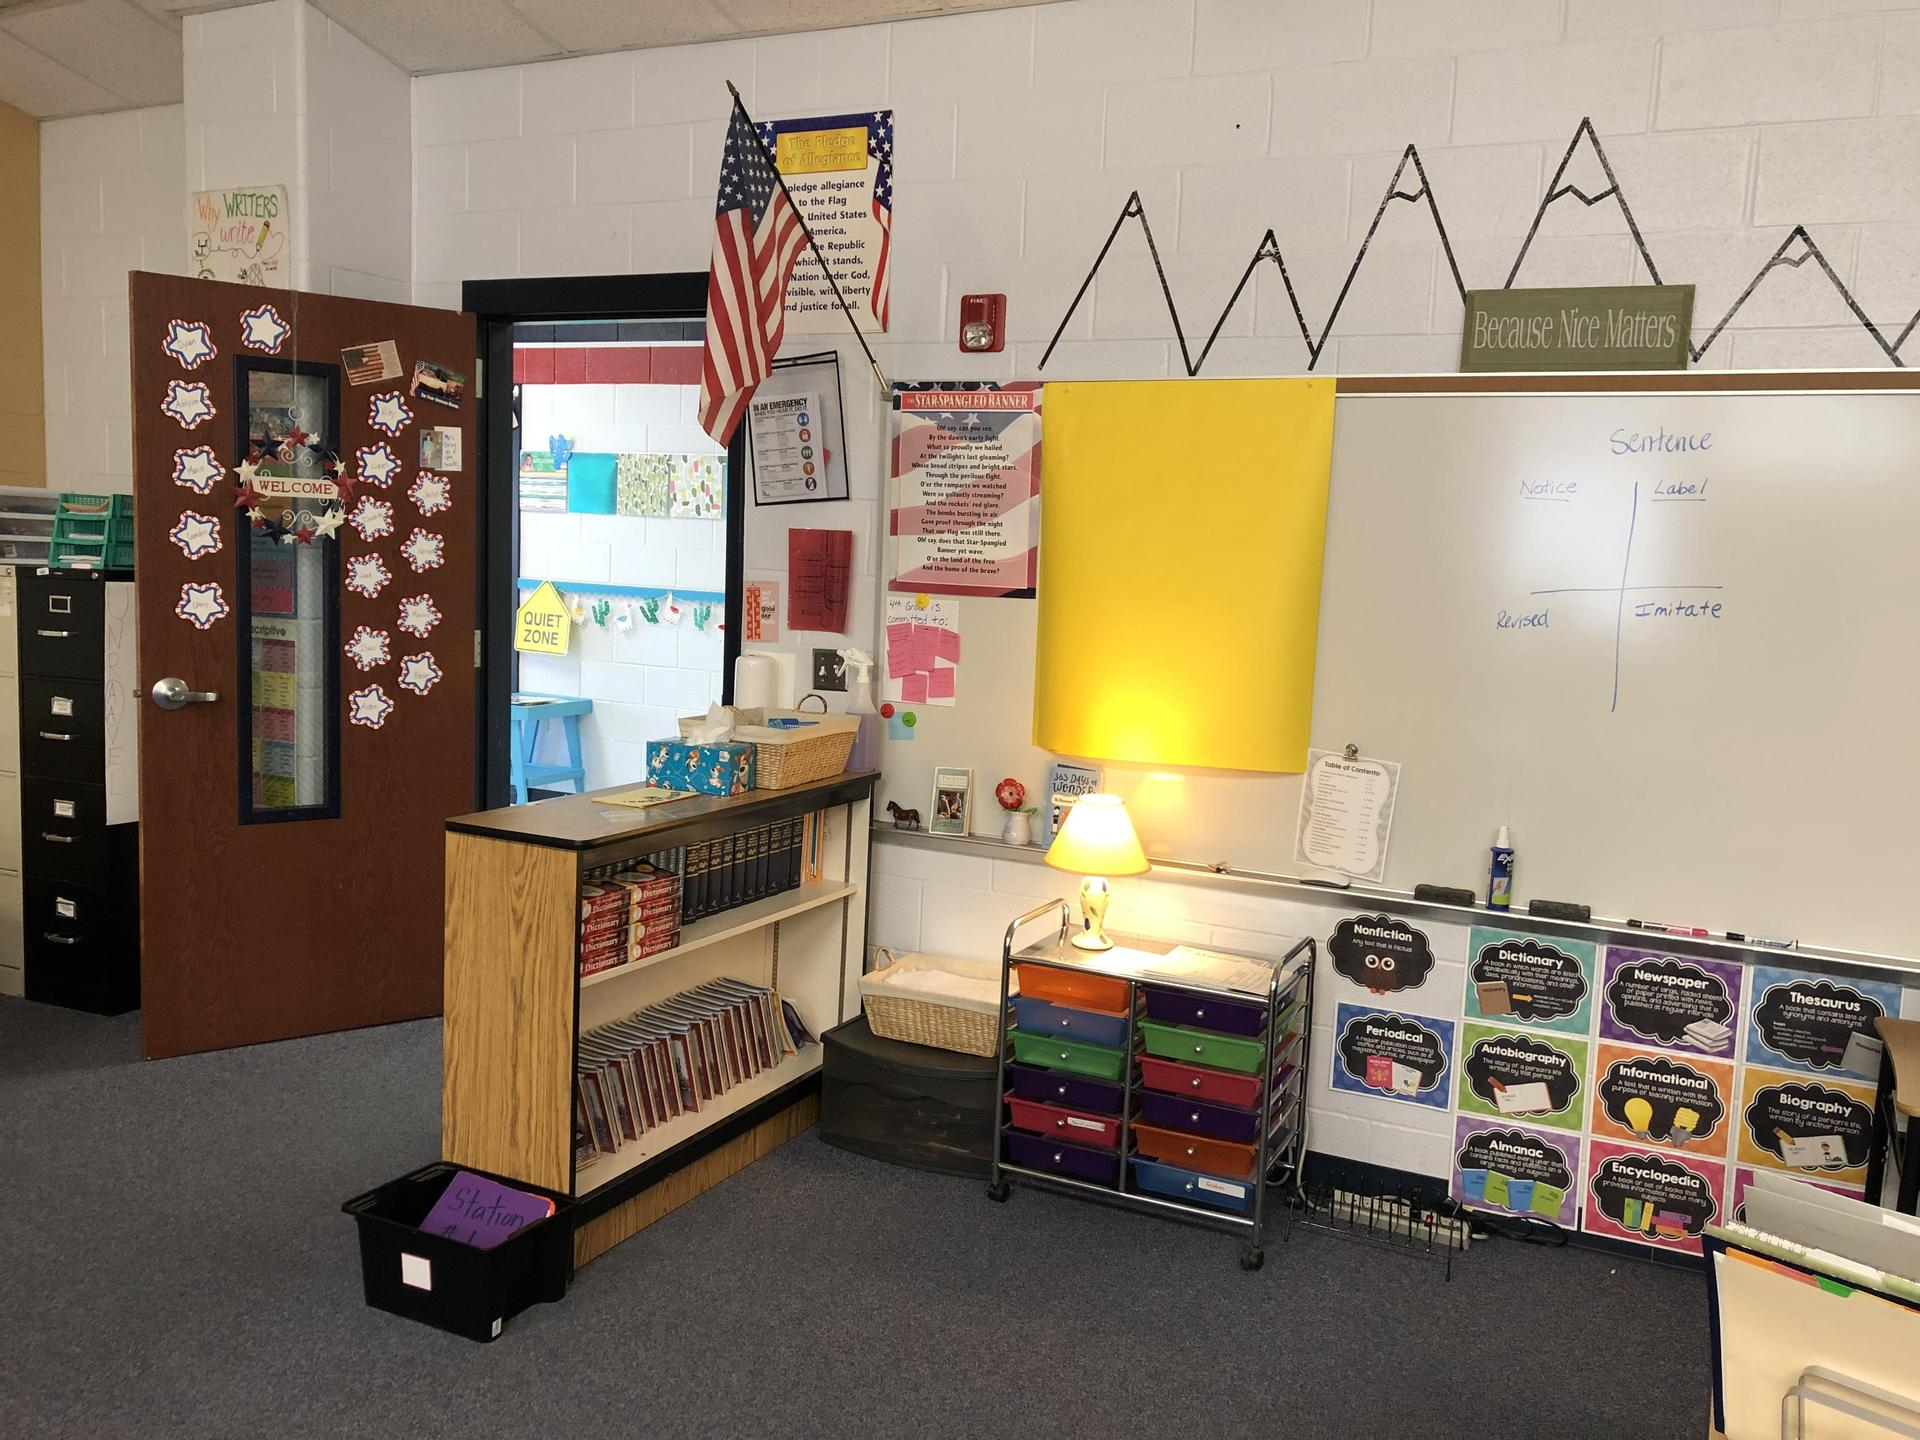 I can't wait to fill up this classroom with our learning!